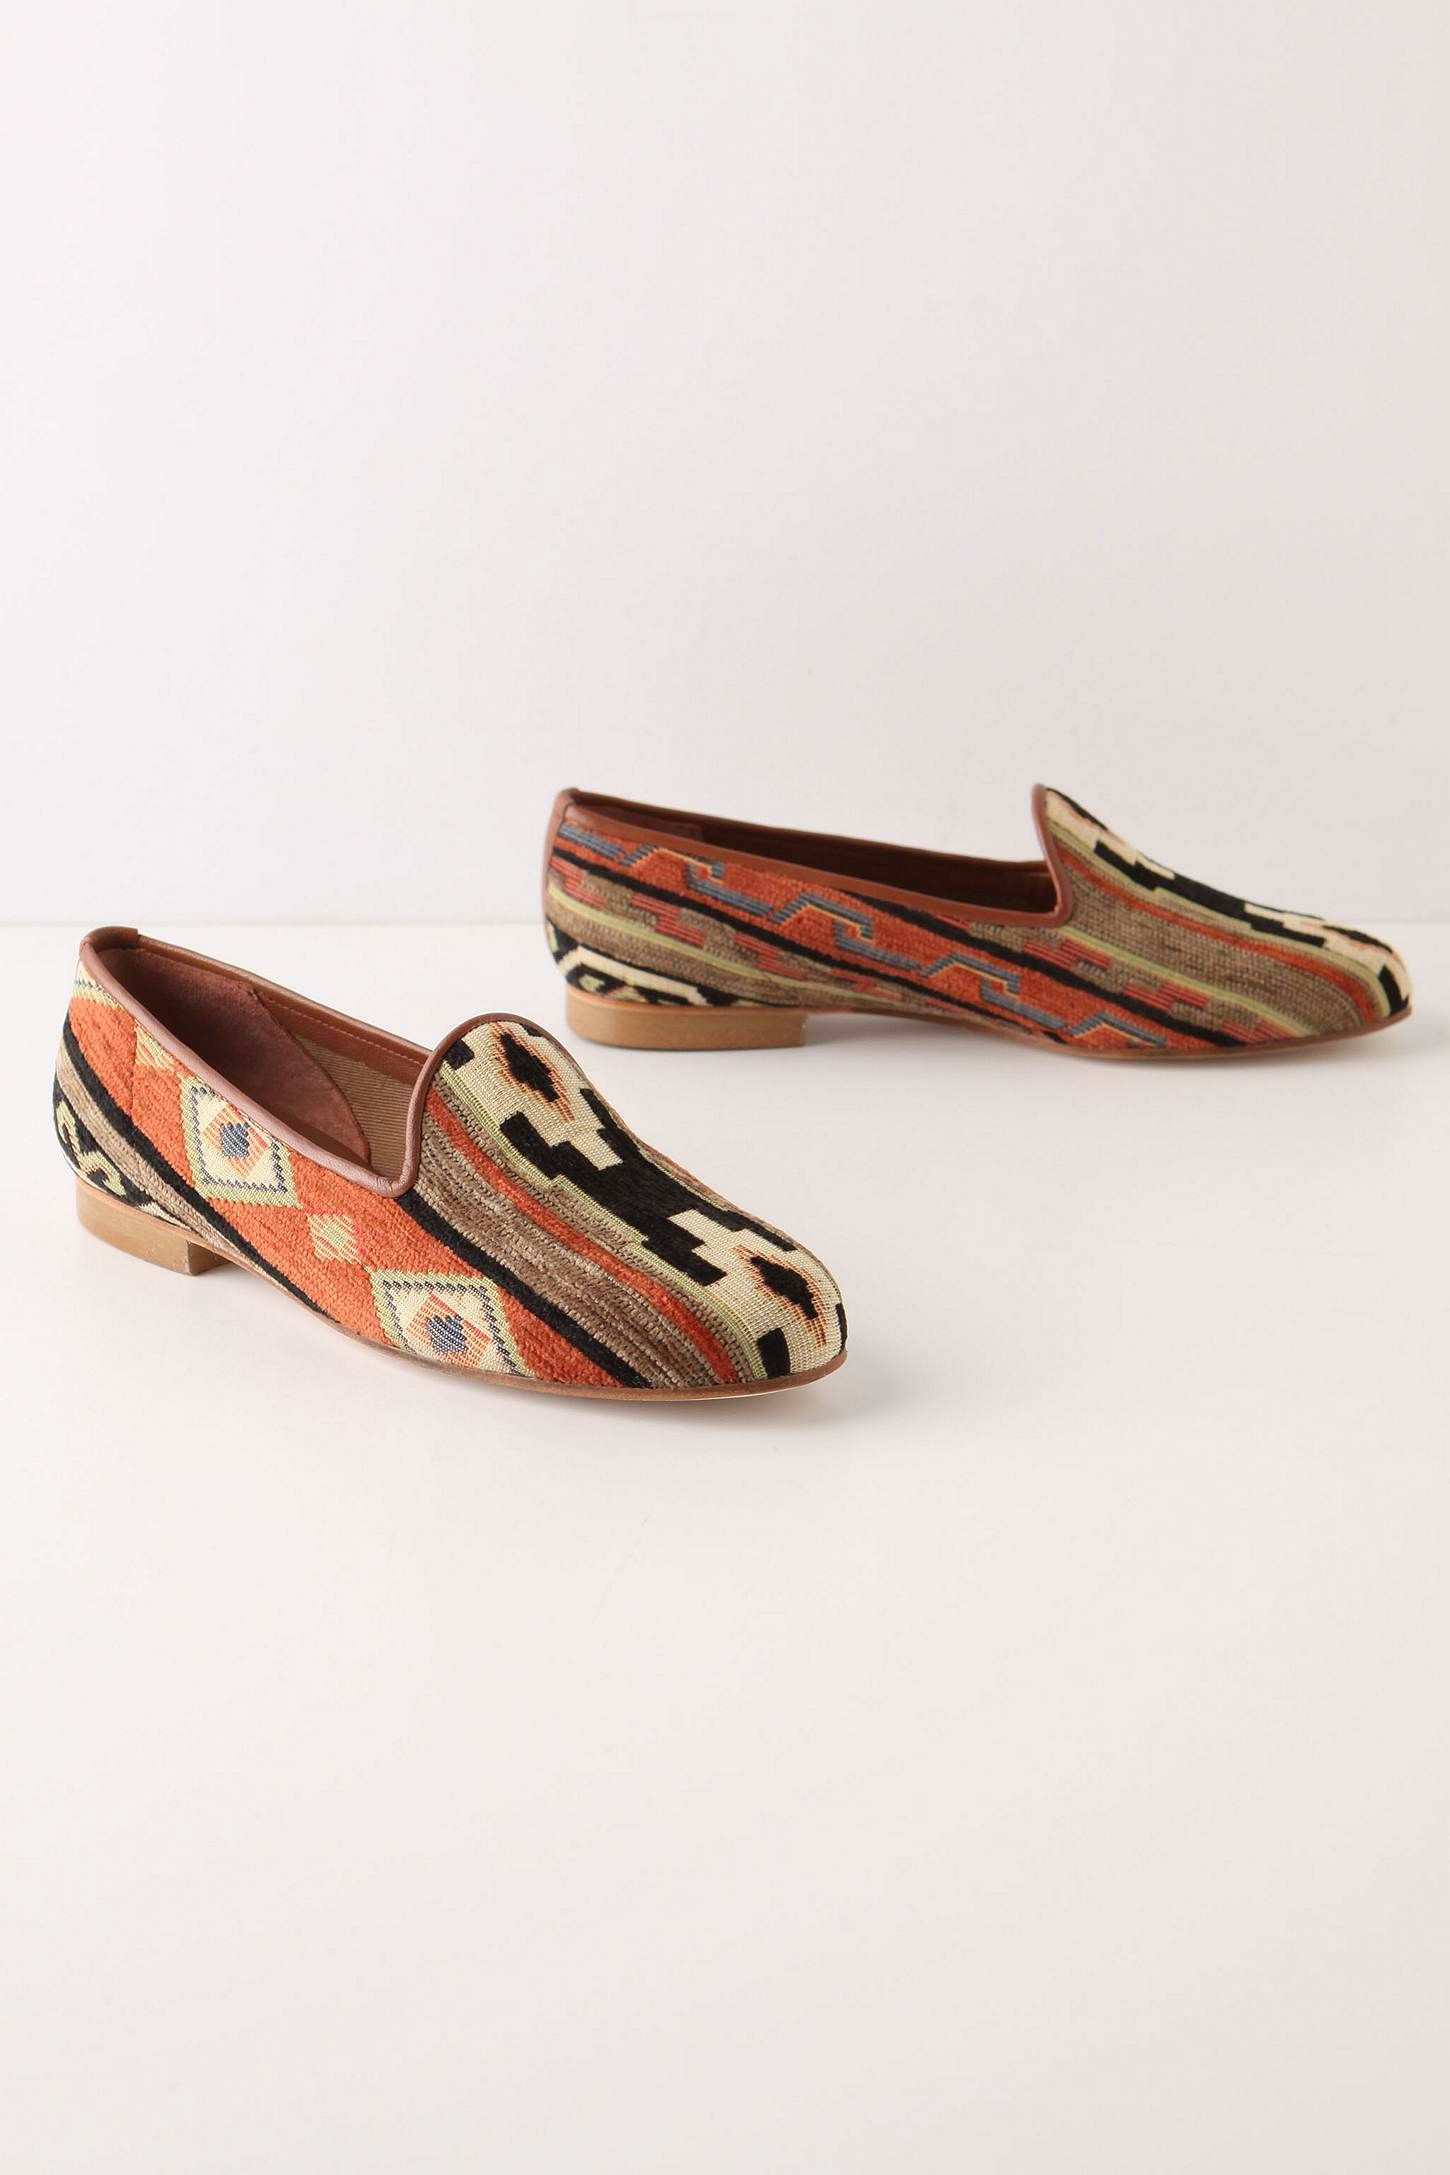 Chuska Loafers from Anthropologie: Landscape hues shade tribal-inspired tapestry on Zalo's flats. Made in Spain.